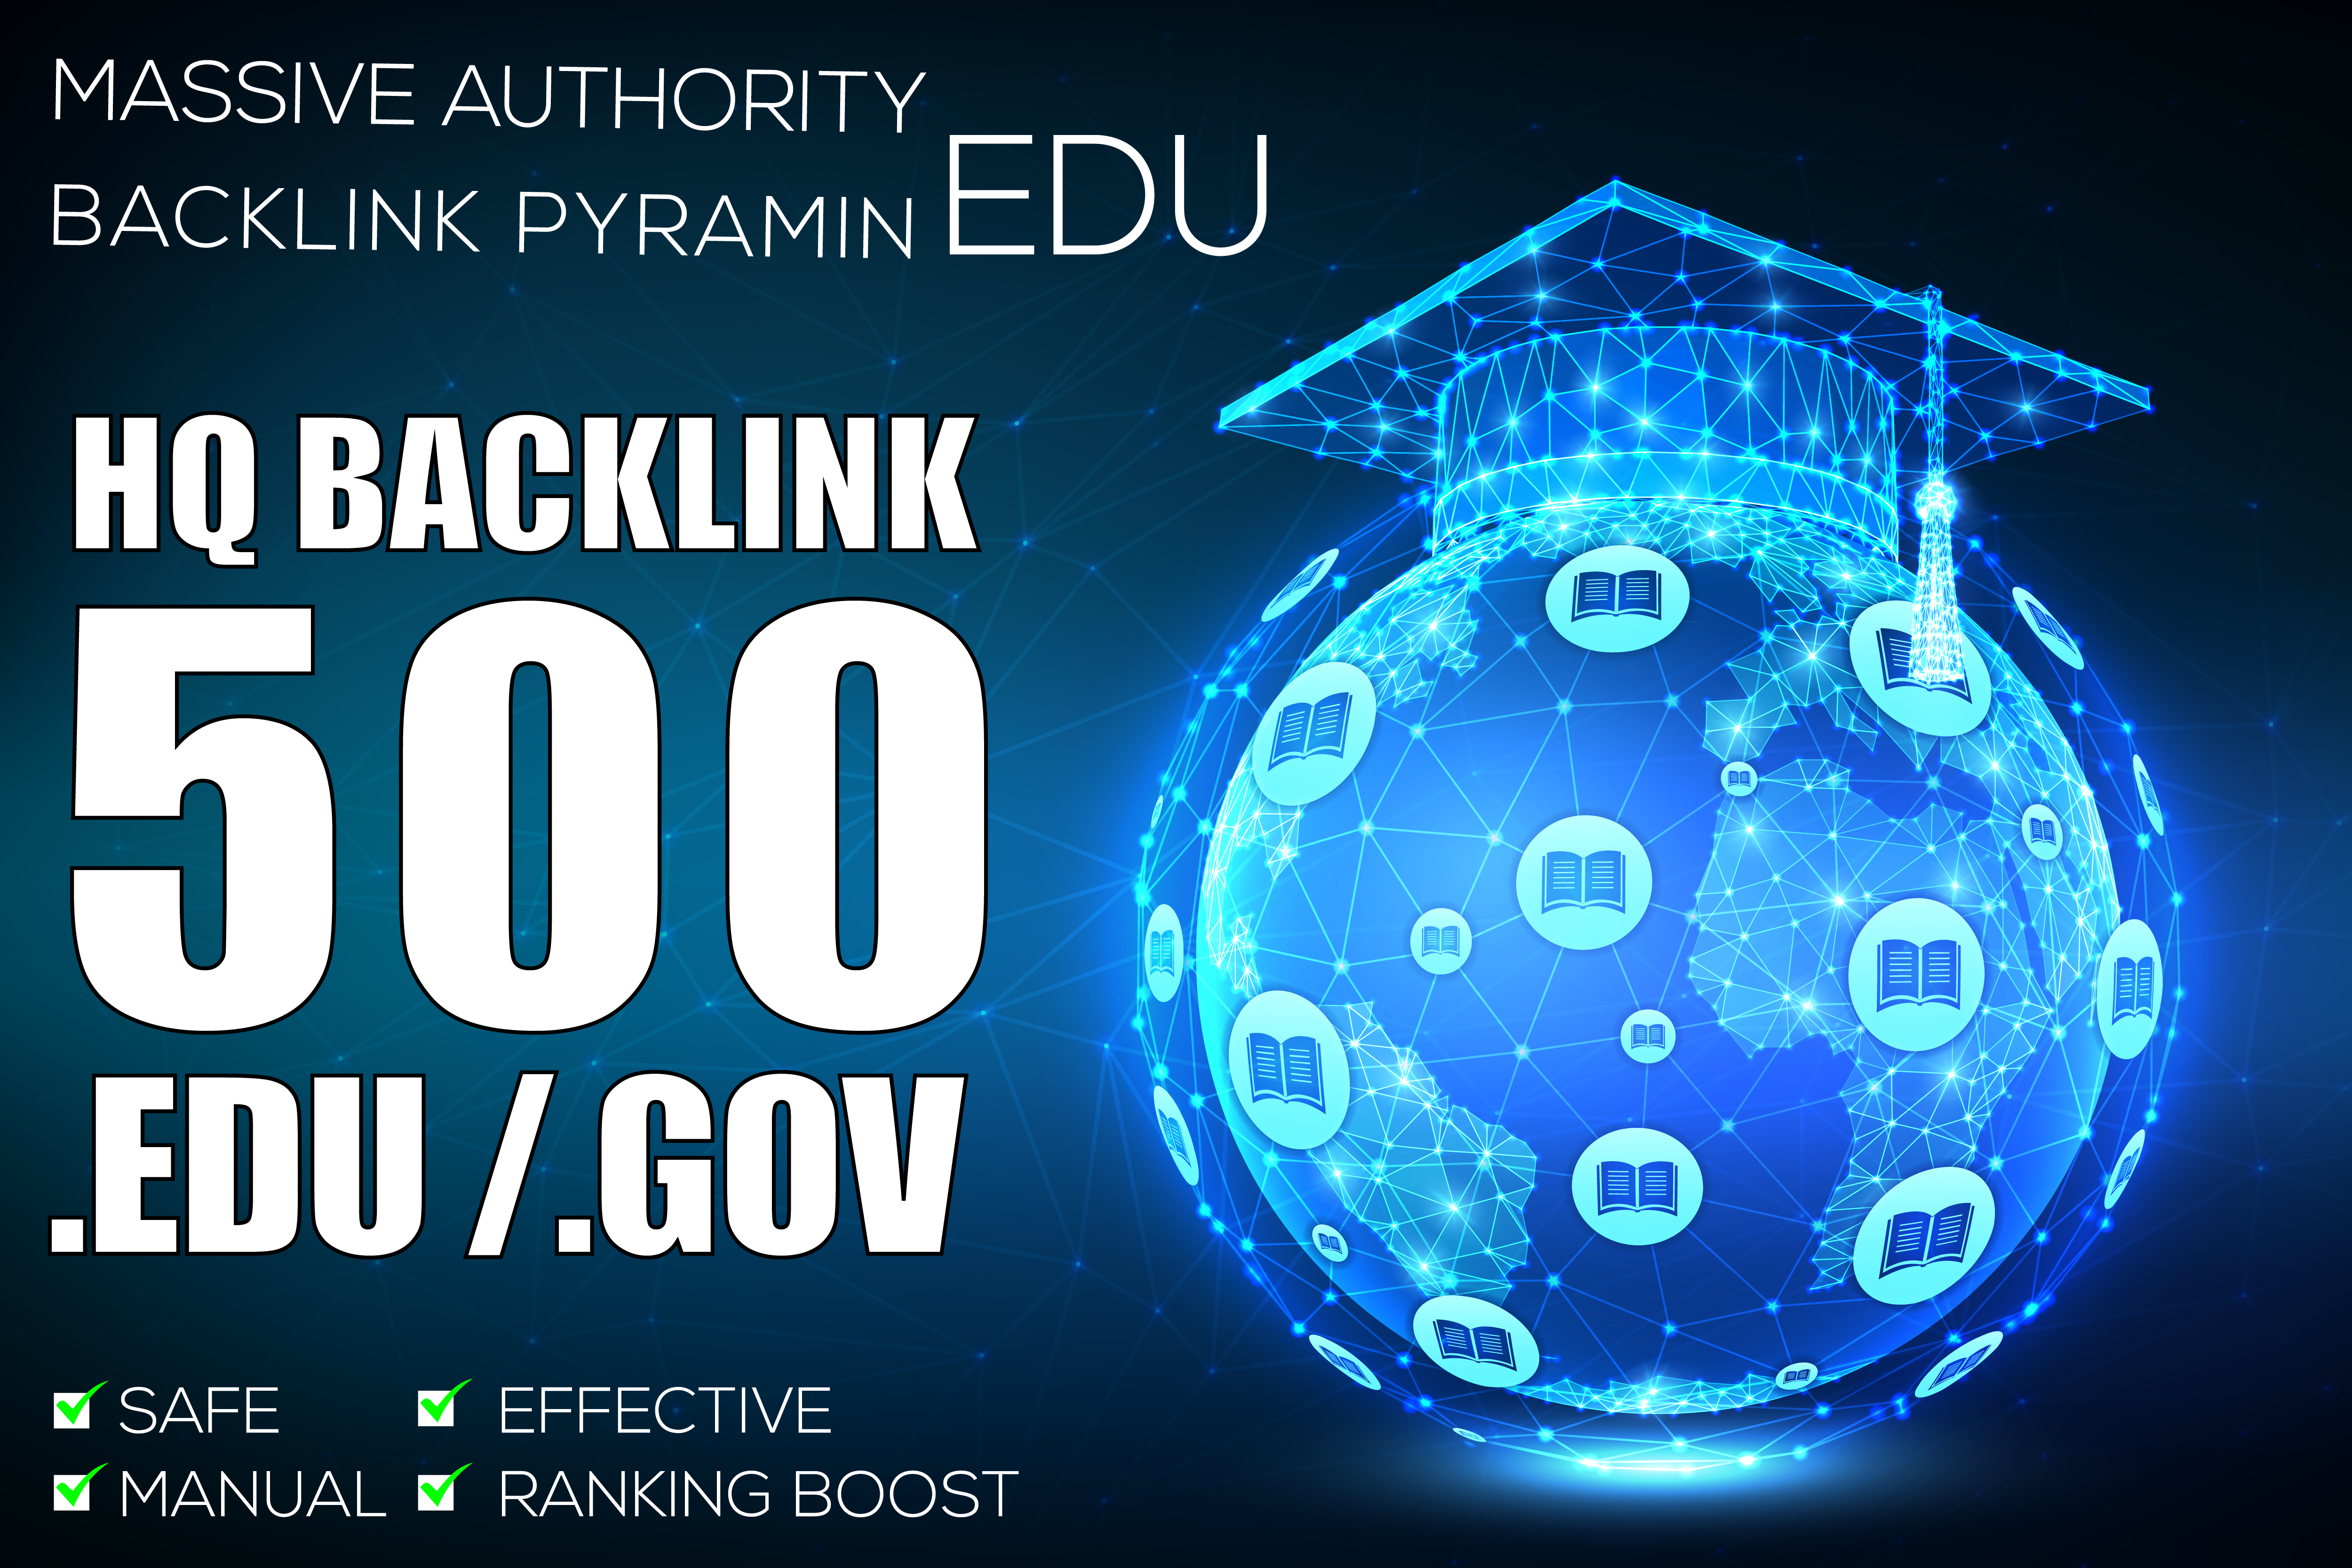 500 edu Real ranking boost in google with backlinks pyramid